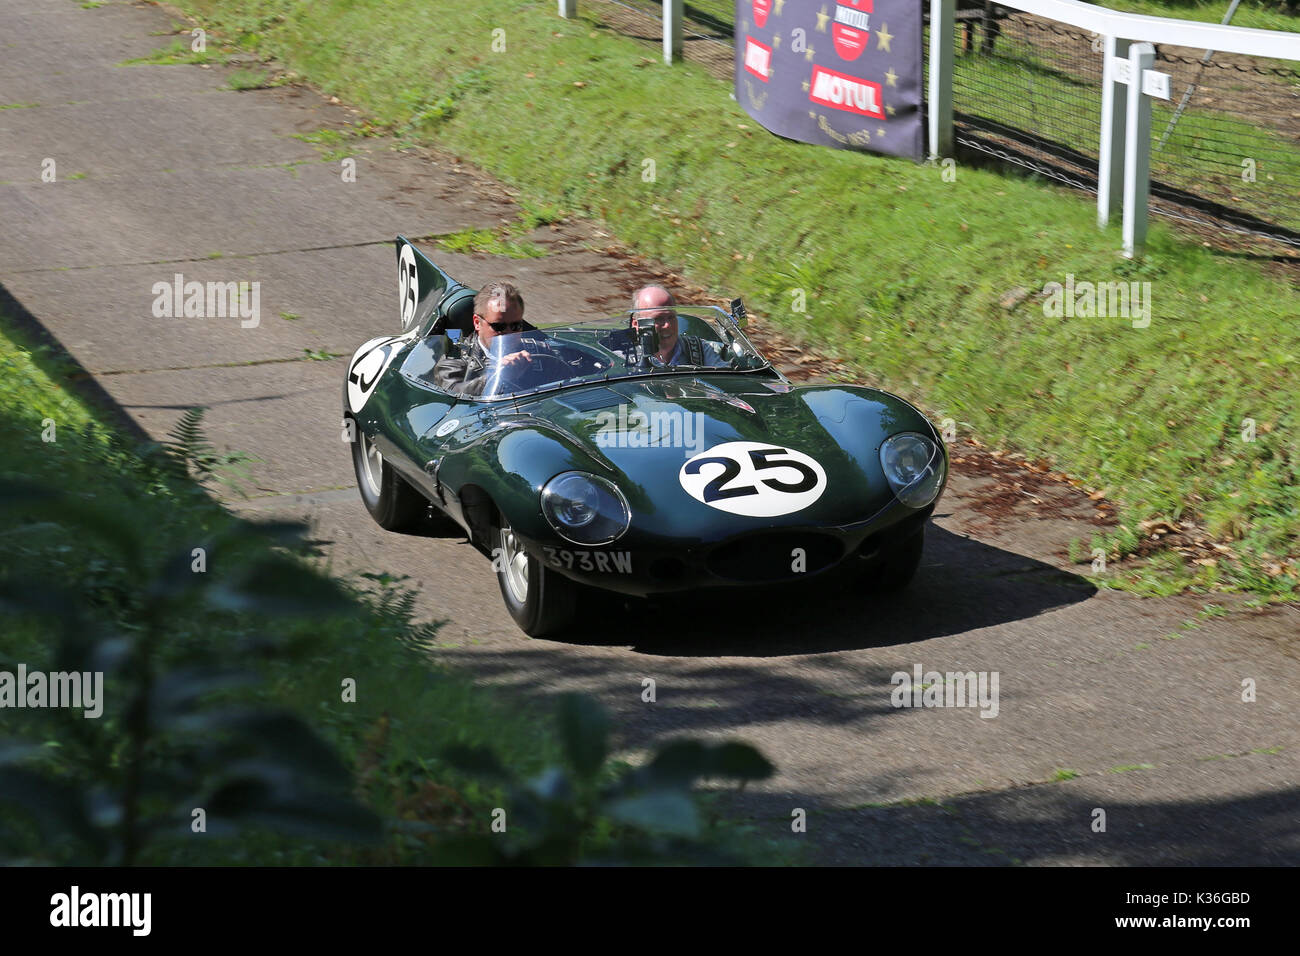 Five historic D-Type Jaguars visit Brooklands circuit, Weybridge, Surrey, England, UK. 1st September 2017. D-Type Jaguars won the Le Mans 24hr endurance race in 1955, 1956 and 1957. In 1957, D-Types were placed 1-2-3-4-6, with only a solitary Ferrari in 5th spoiling the parade. In picture, shown on Test Hill, car numbered '25' (Jaguar Works, XKD 605, 'long-nose') was 6th at Le Mans in 1956. - Stock Image